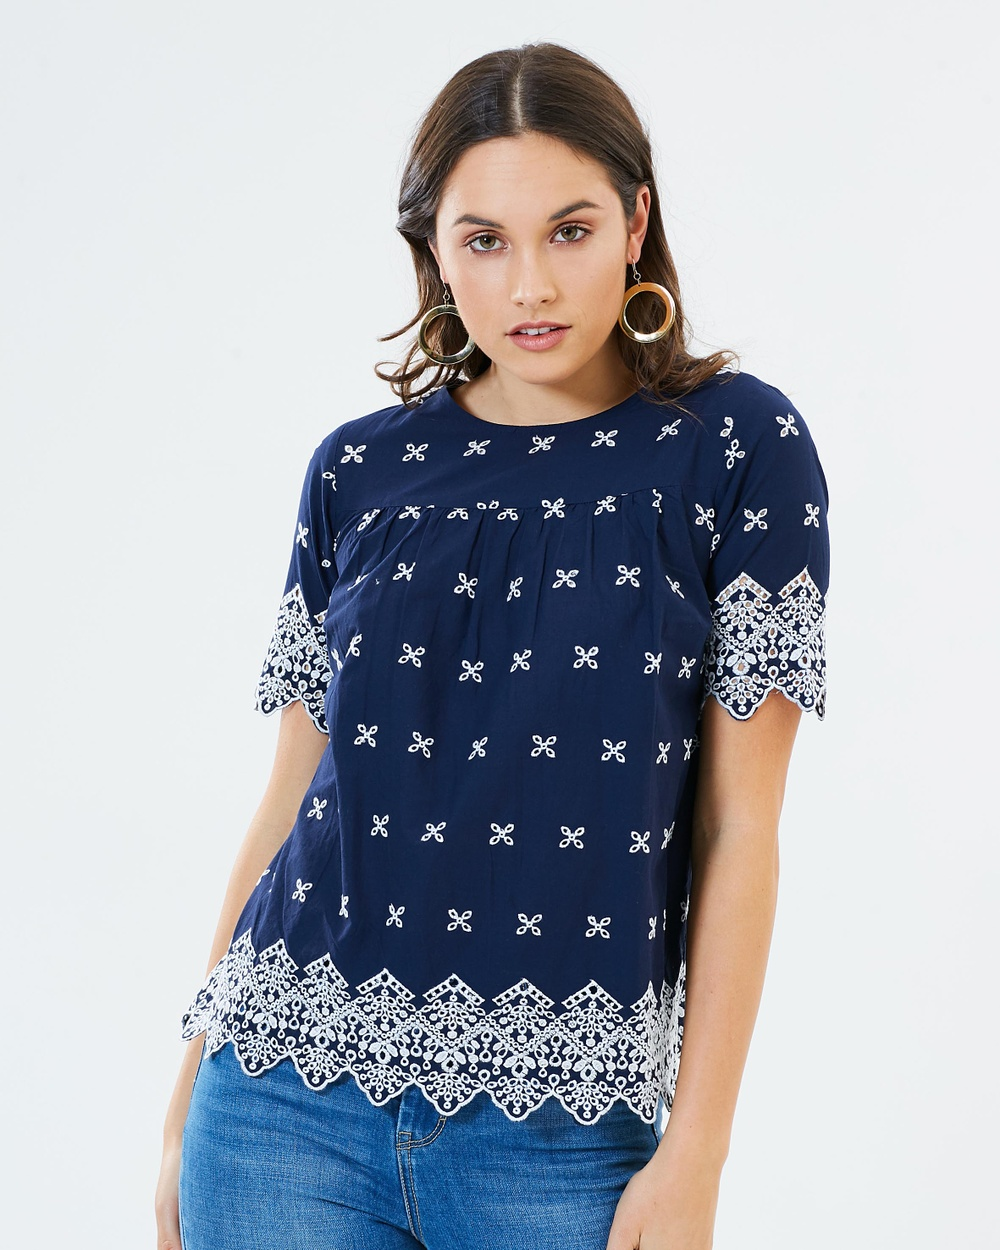 Dorothy Perkins Scallop Broderie Top Tops Navy Blue Scallop Broderie Top